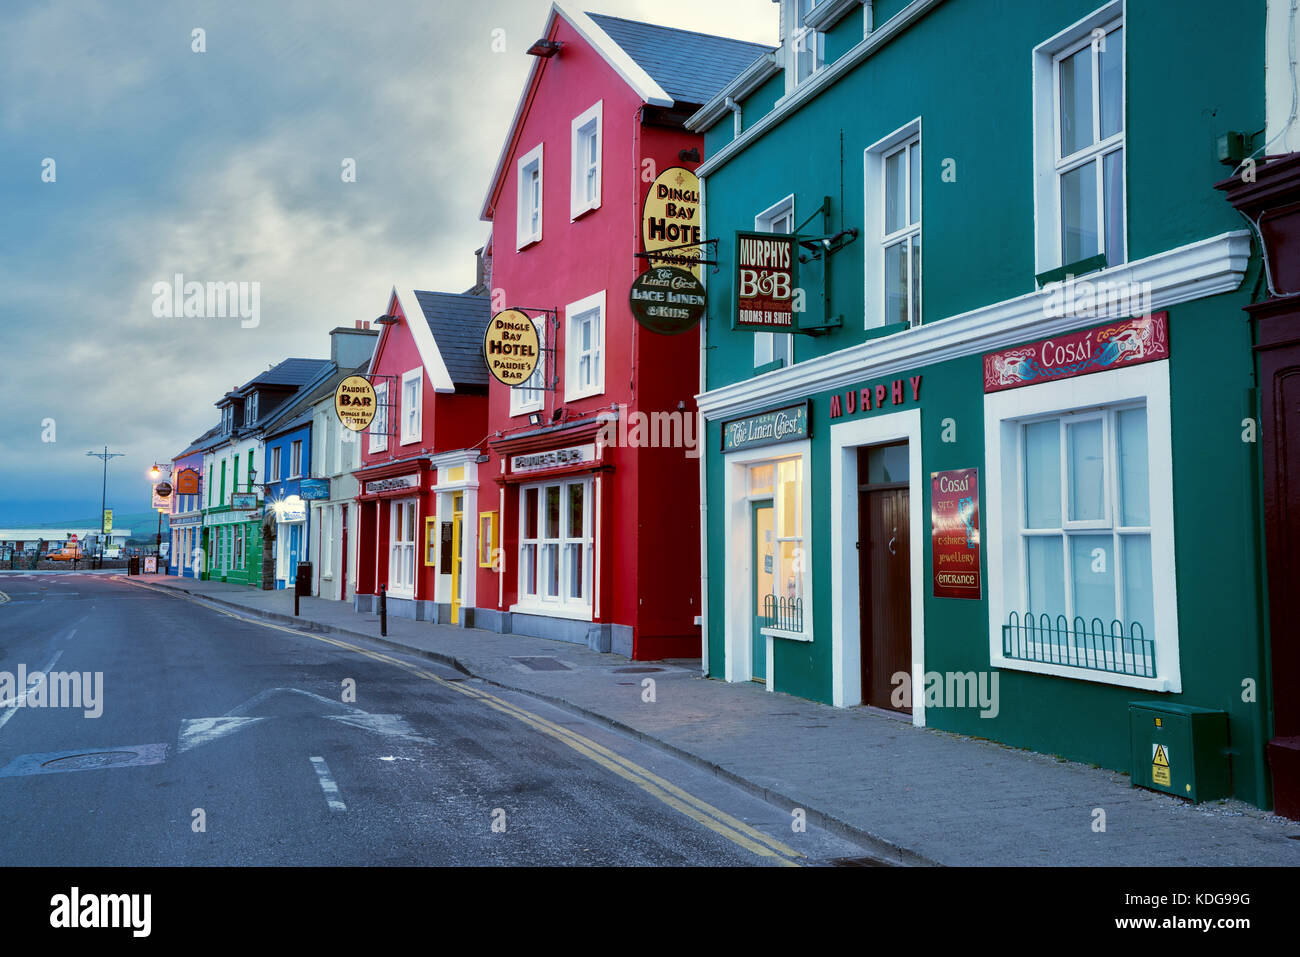 Colorful store fronts in Dingle, County Kerry, Ireland Stock Photo